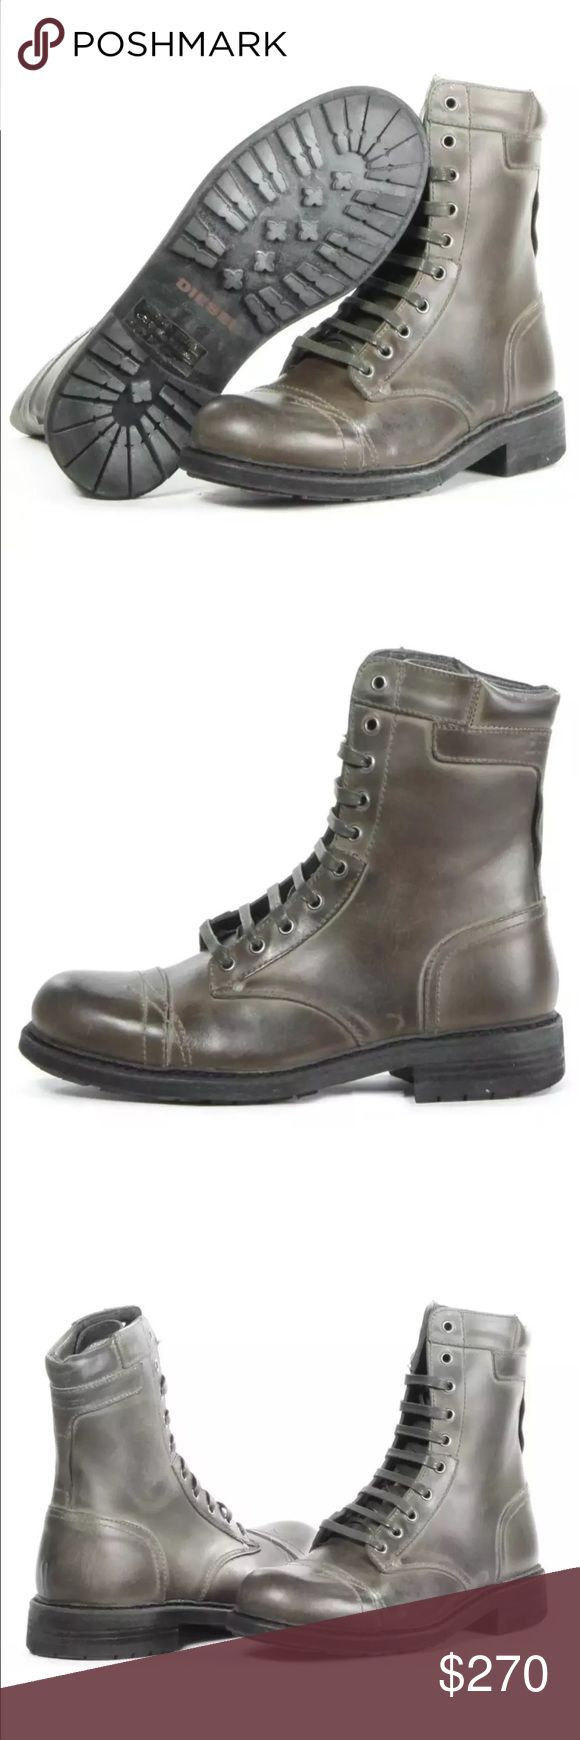 Diesel boots Brand new in box Cassidy boots size 10 Diesel Shoes Boots